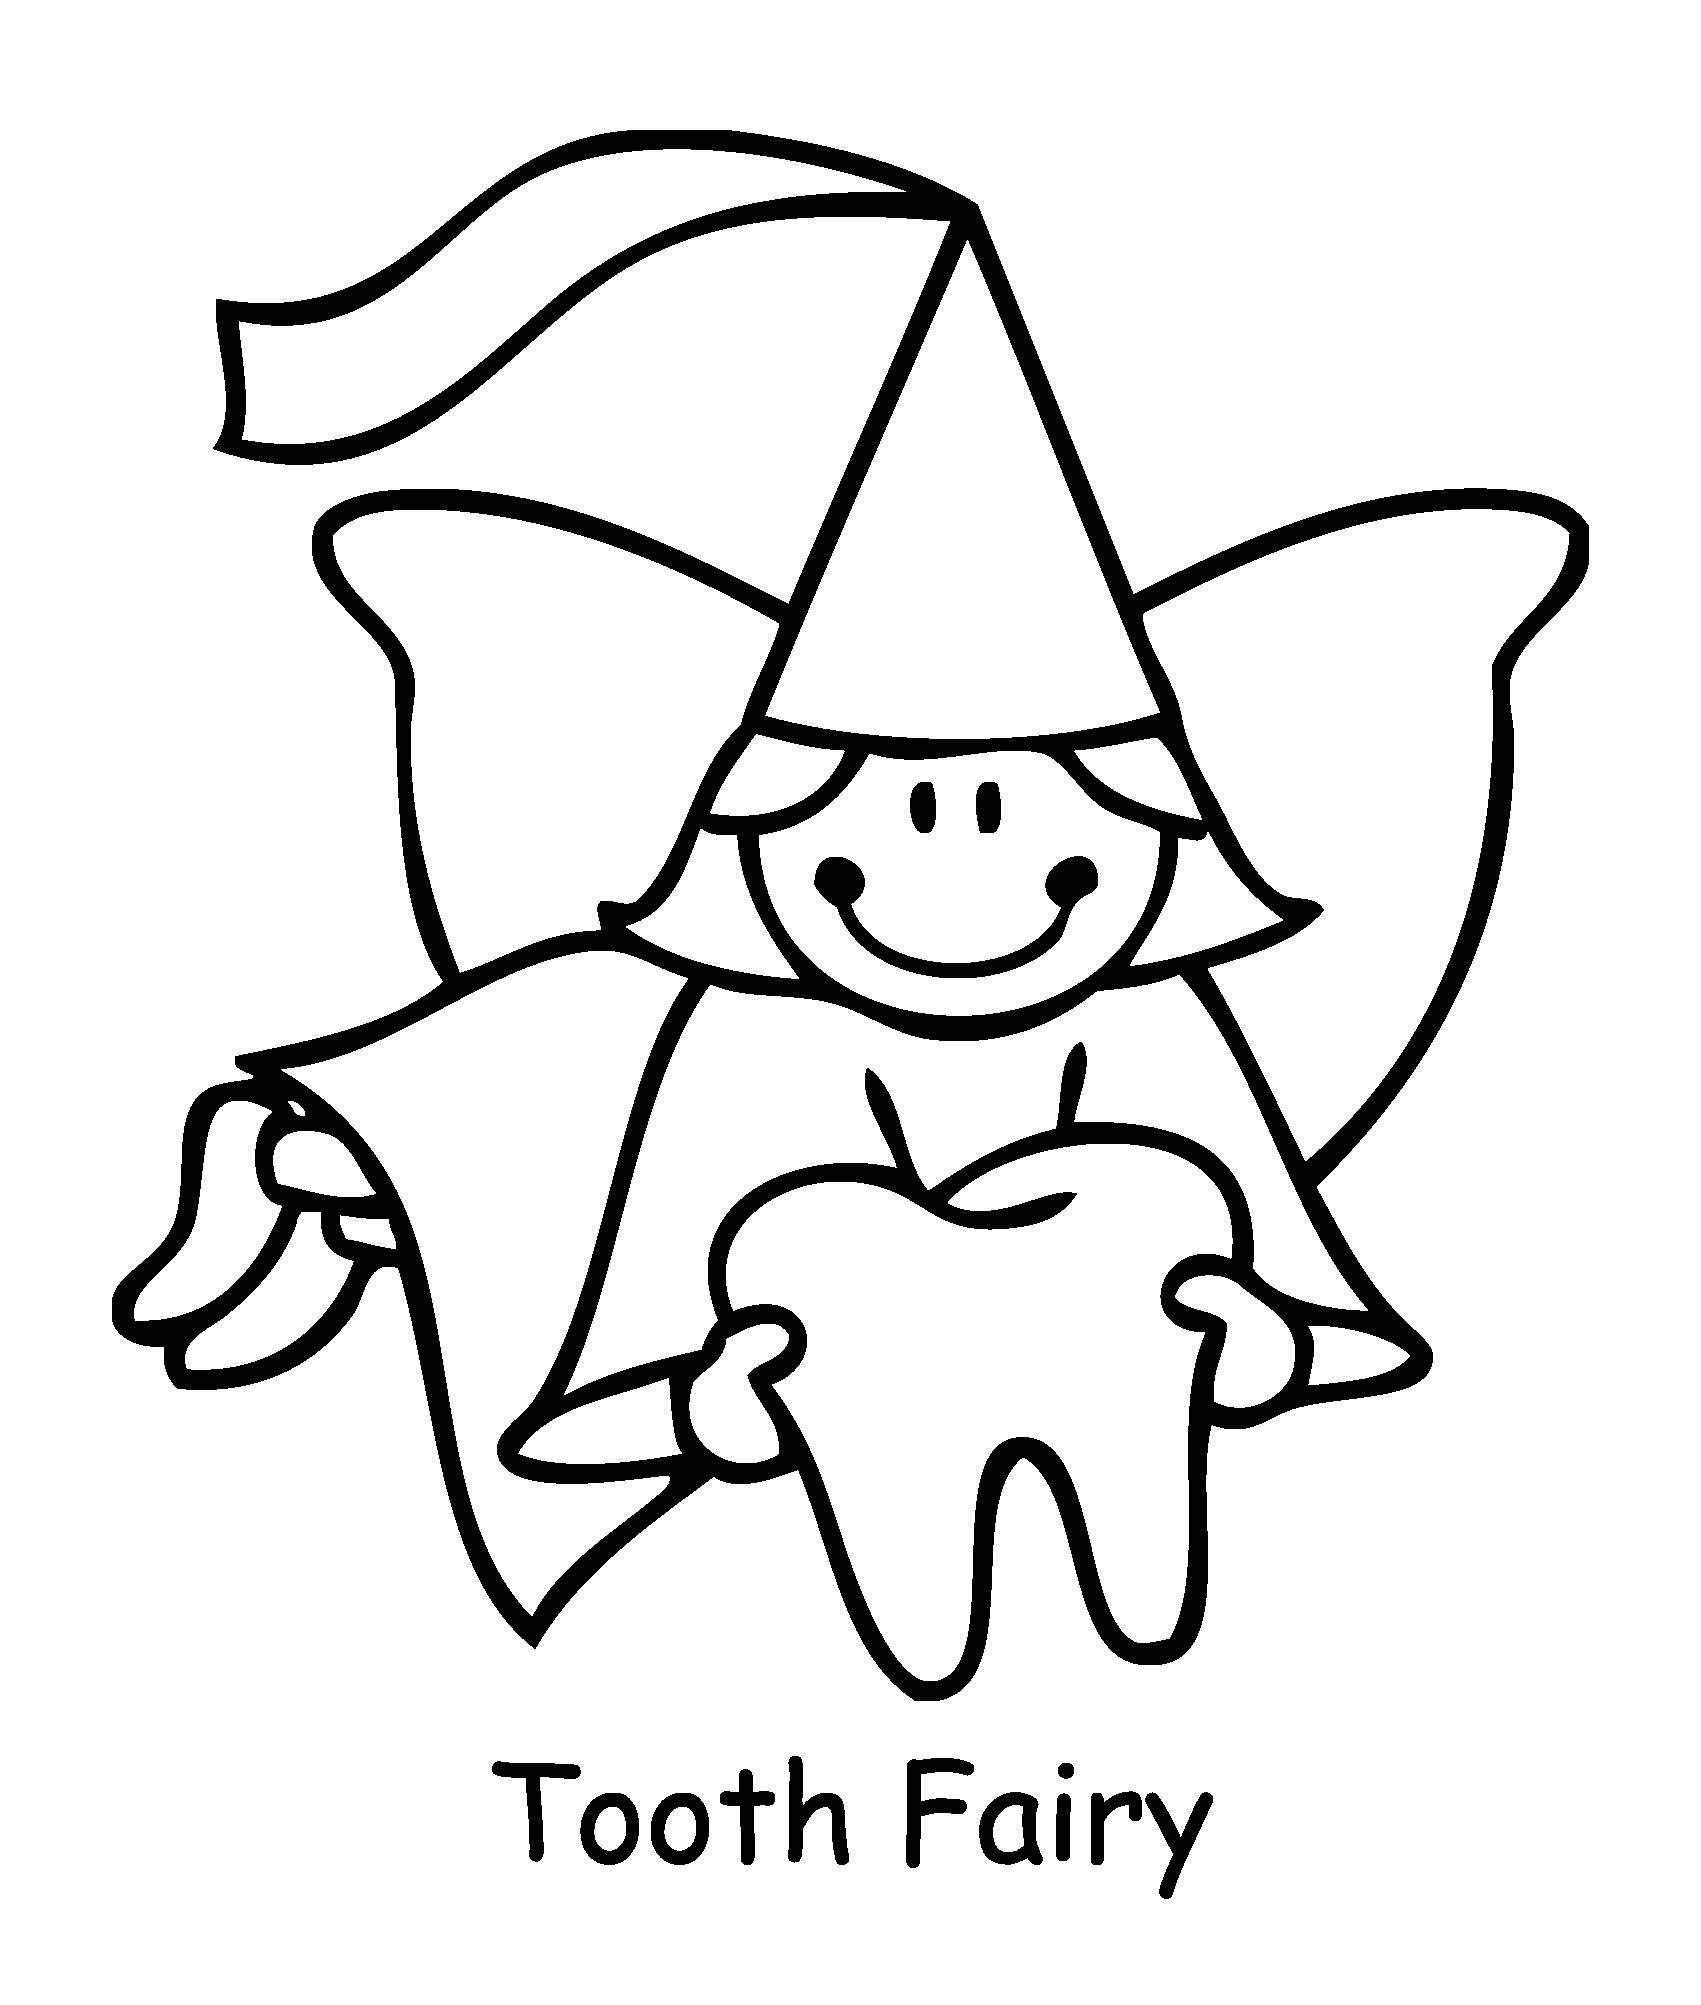 tooth fairy pictures to color free printable tooth fairy coloring pages coloring home tooth color pictures to fairy